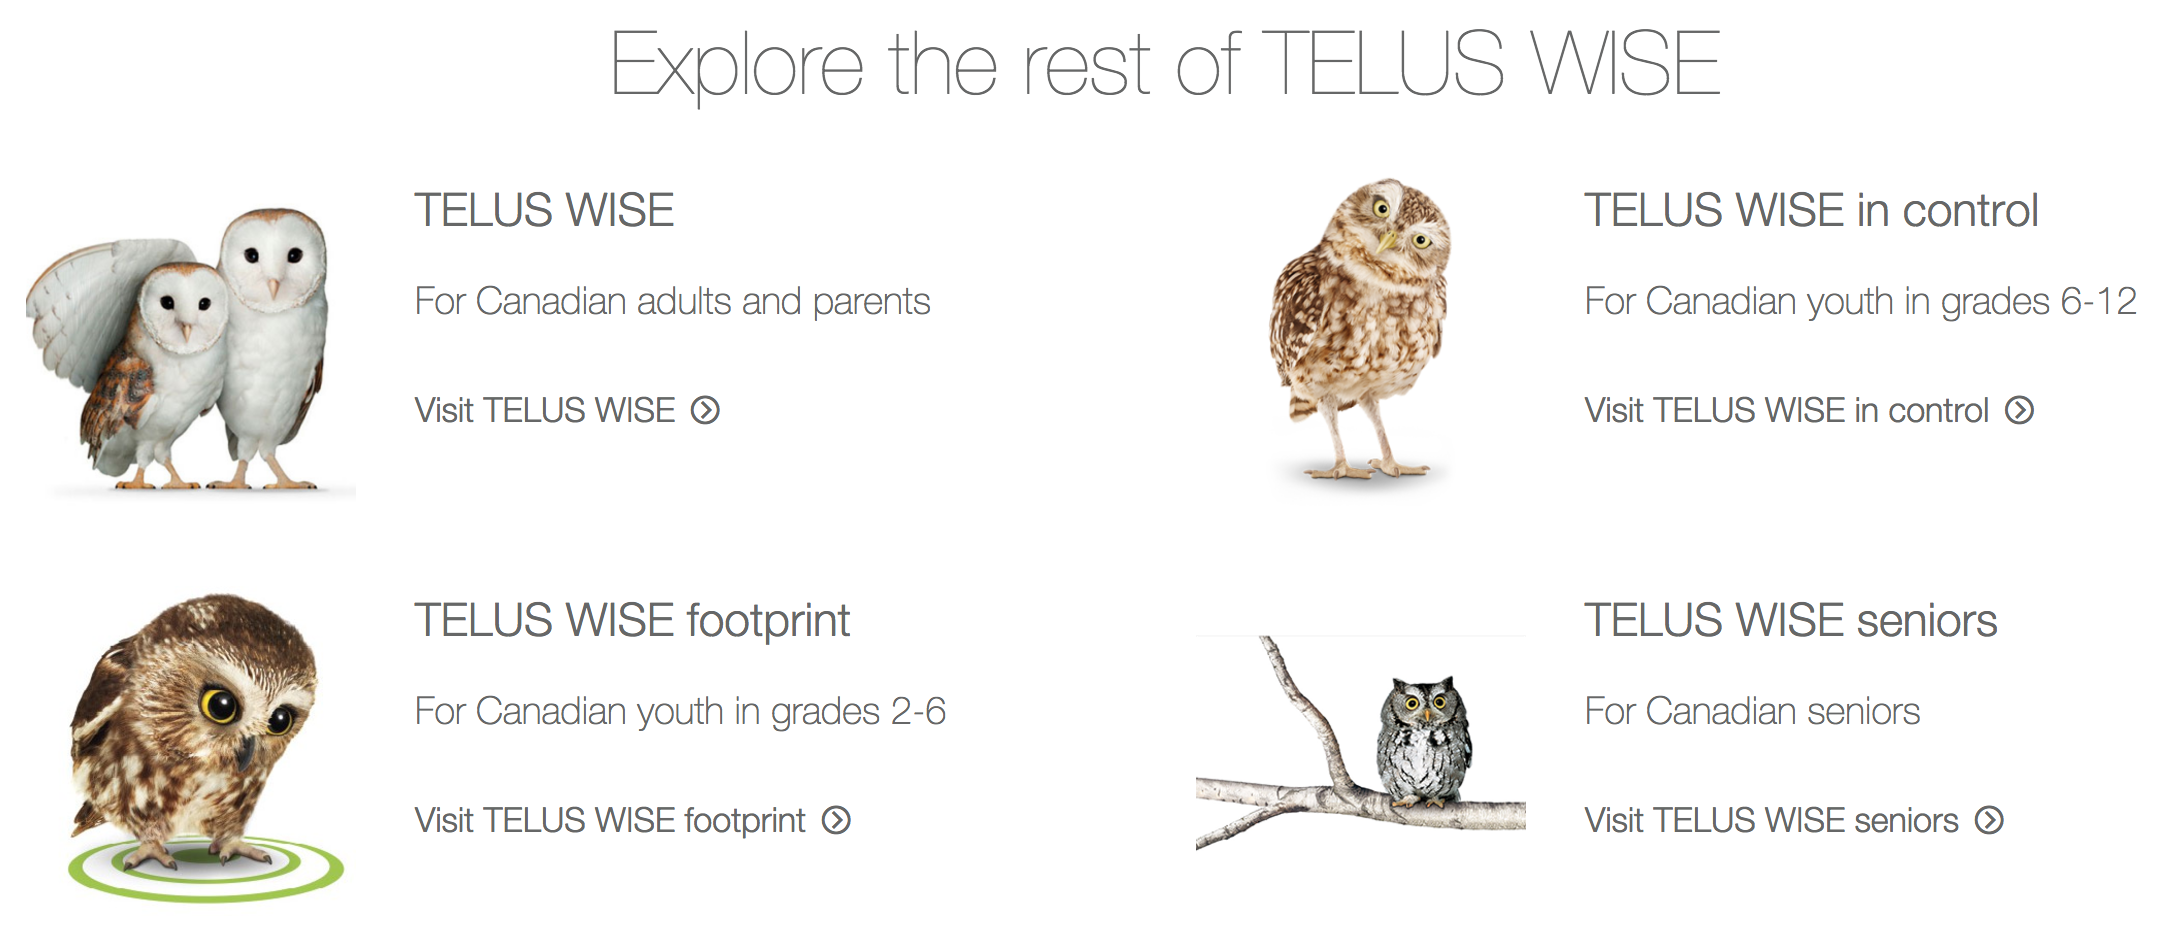 Back to School Back to School Online Safety from Elementary to High School: TELUS WISE Guide // thislilpiglet.net